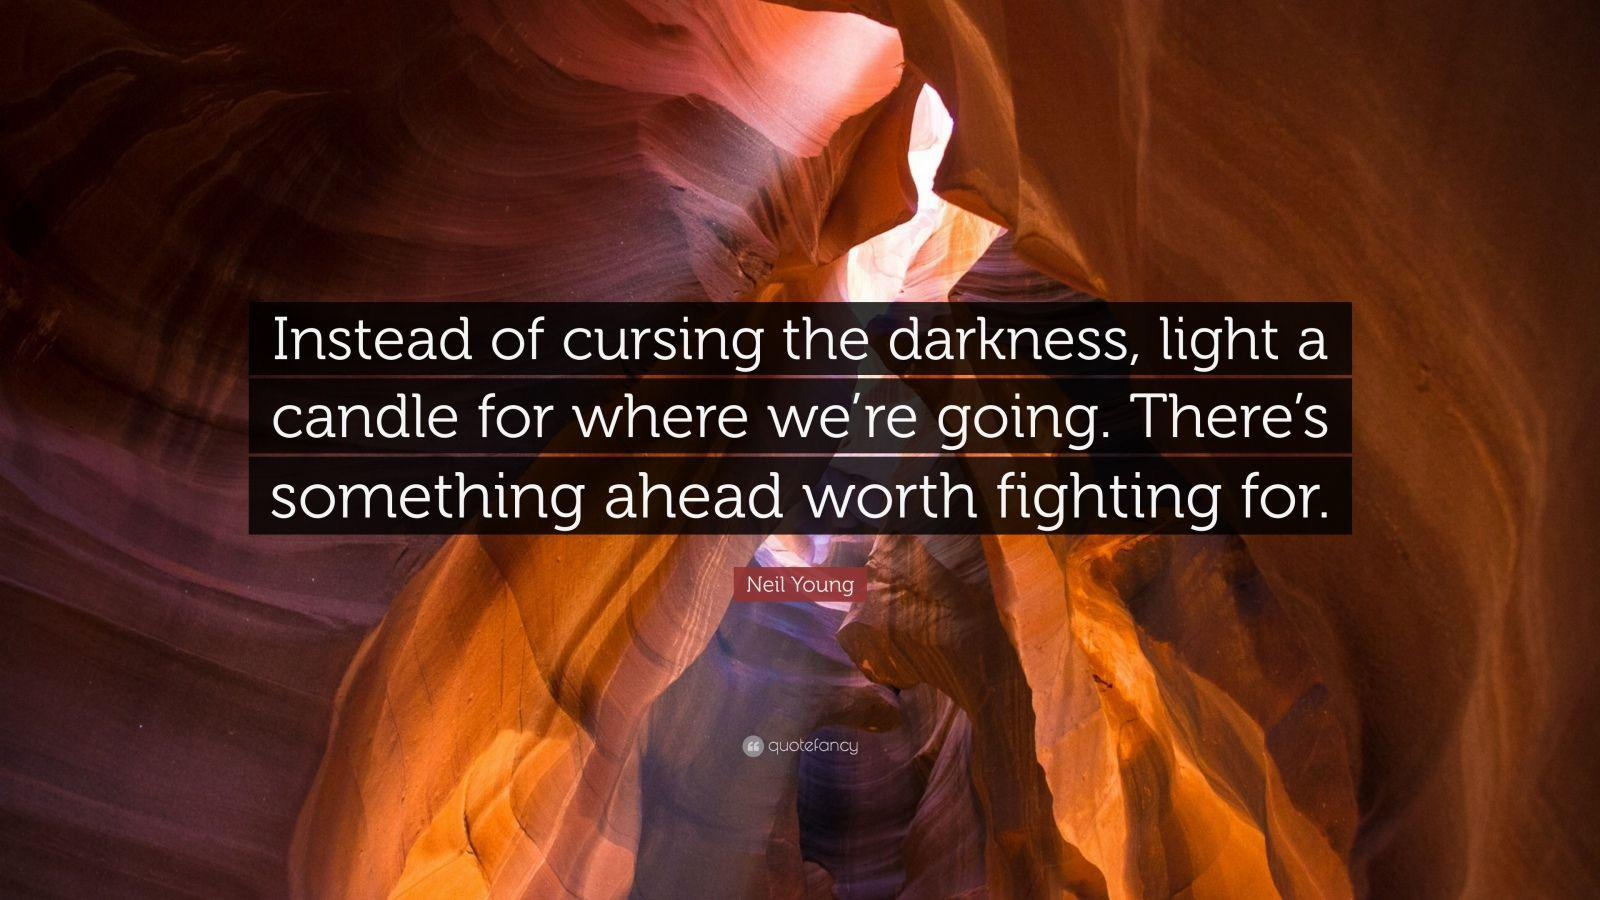 [Image] Instead of cursing the darkness, light a candle for where we're going. There's something ahead worth fighting for. – Neil Young